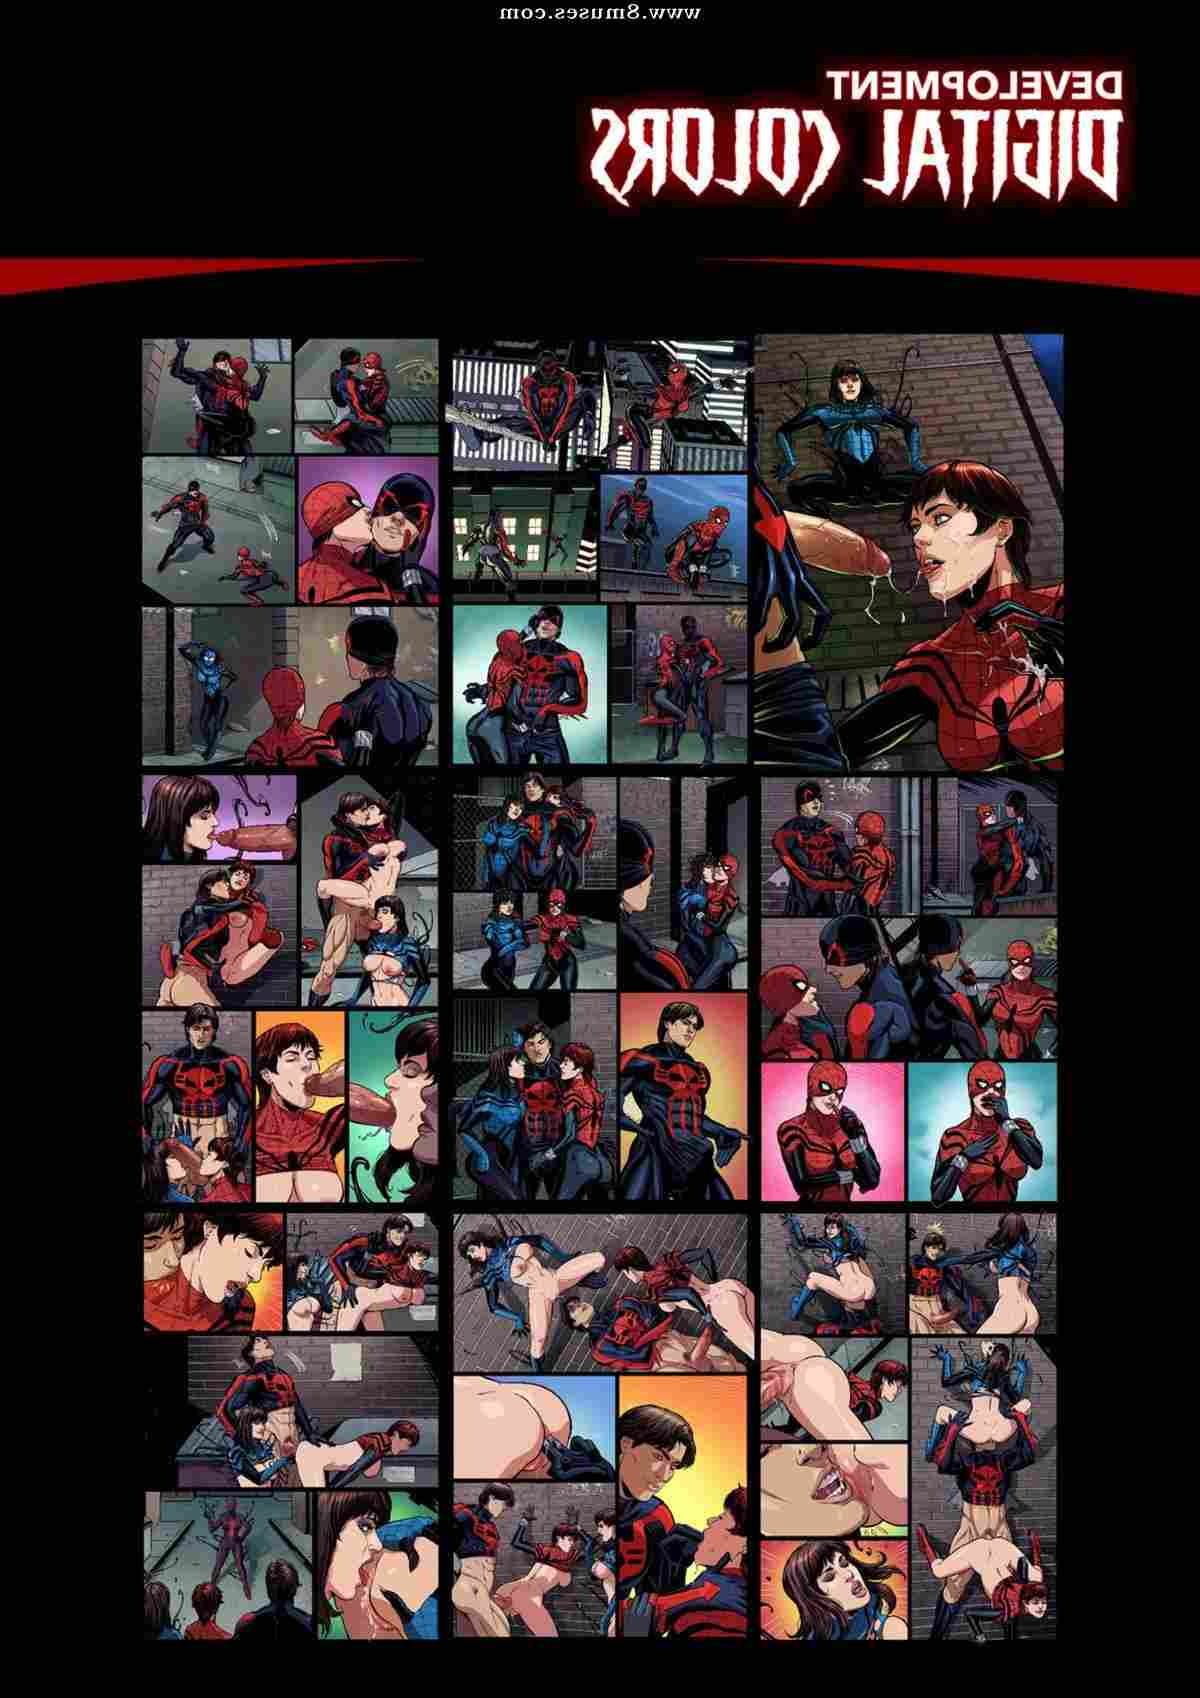 Tracy-Scops-Comics/Mayday-Spidey-2099 Mayday_Spidey_2099__8muses_-_Sex_and_Porn_Comics_15.jpg